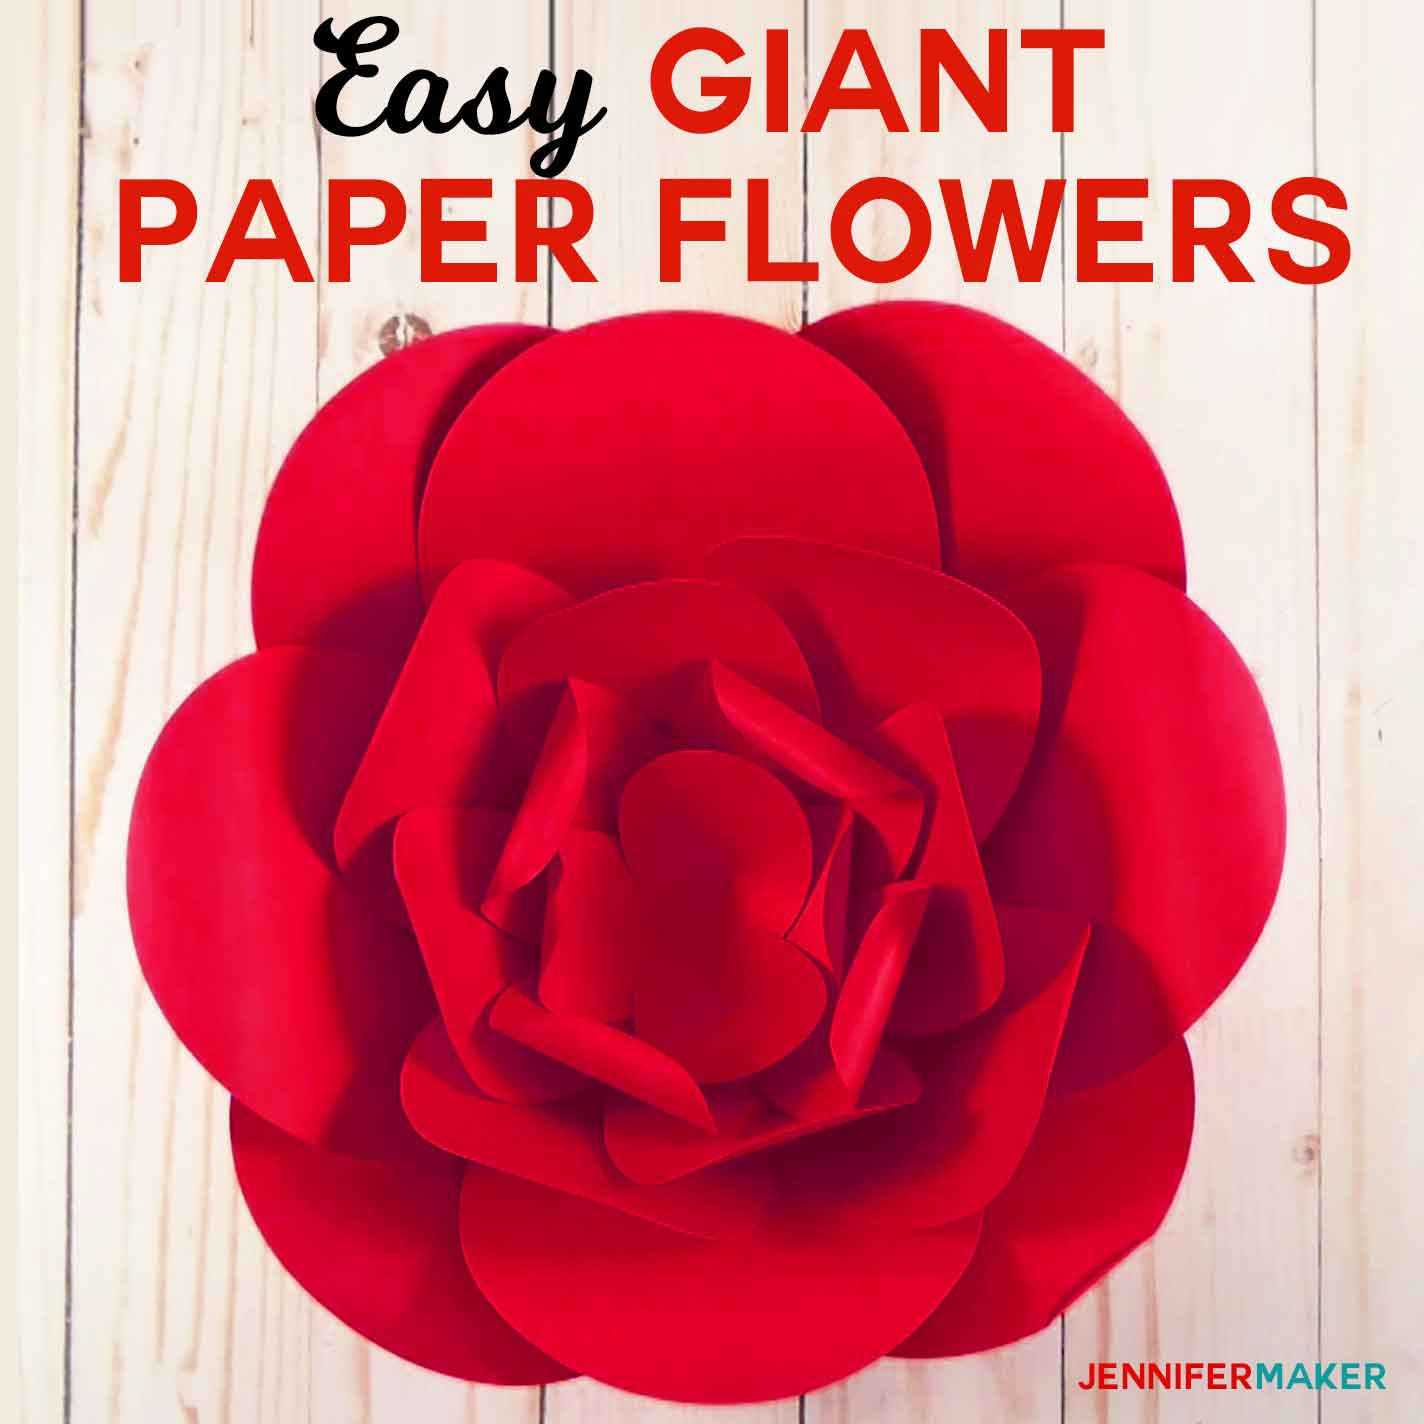 How to make giant paper flowers easy and fast jennifer maker how to make giant paper flowers fast and easy free pattern and svg cut file mightylinksfo Images